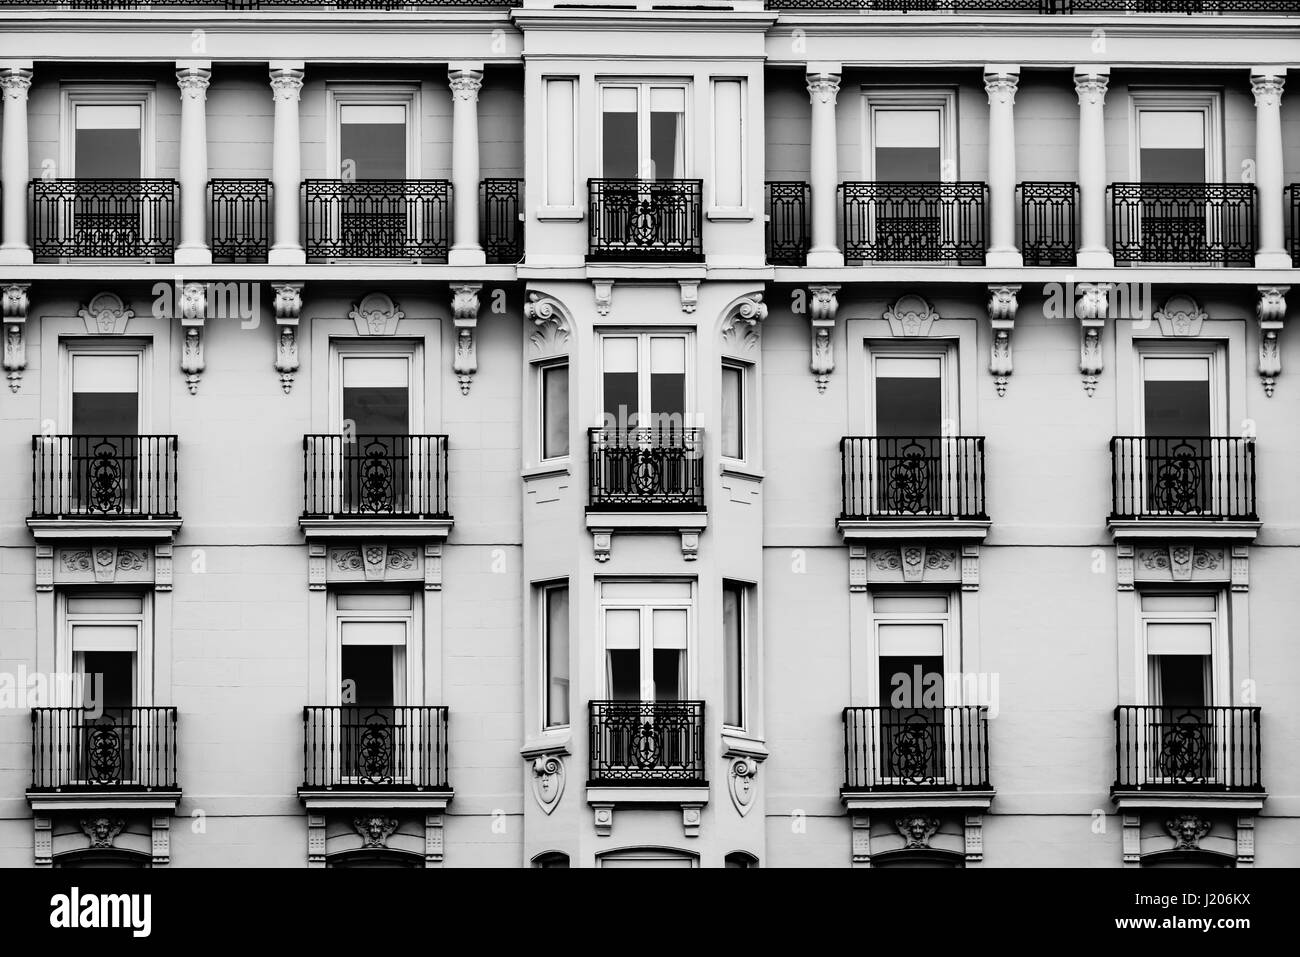 Hotel building exterior - Stock Image